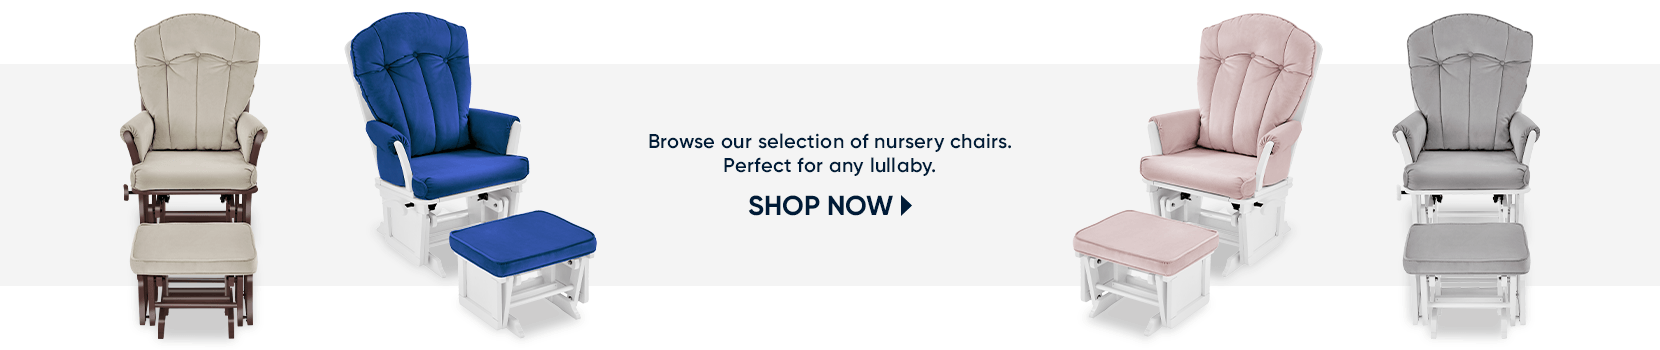 browse our selection of nursery chairs. perfect for any lullaby. shop now